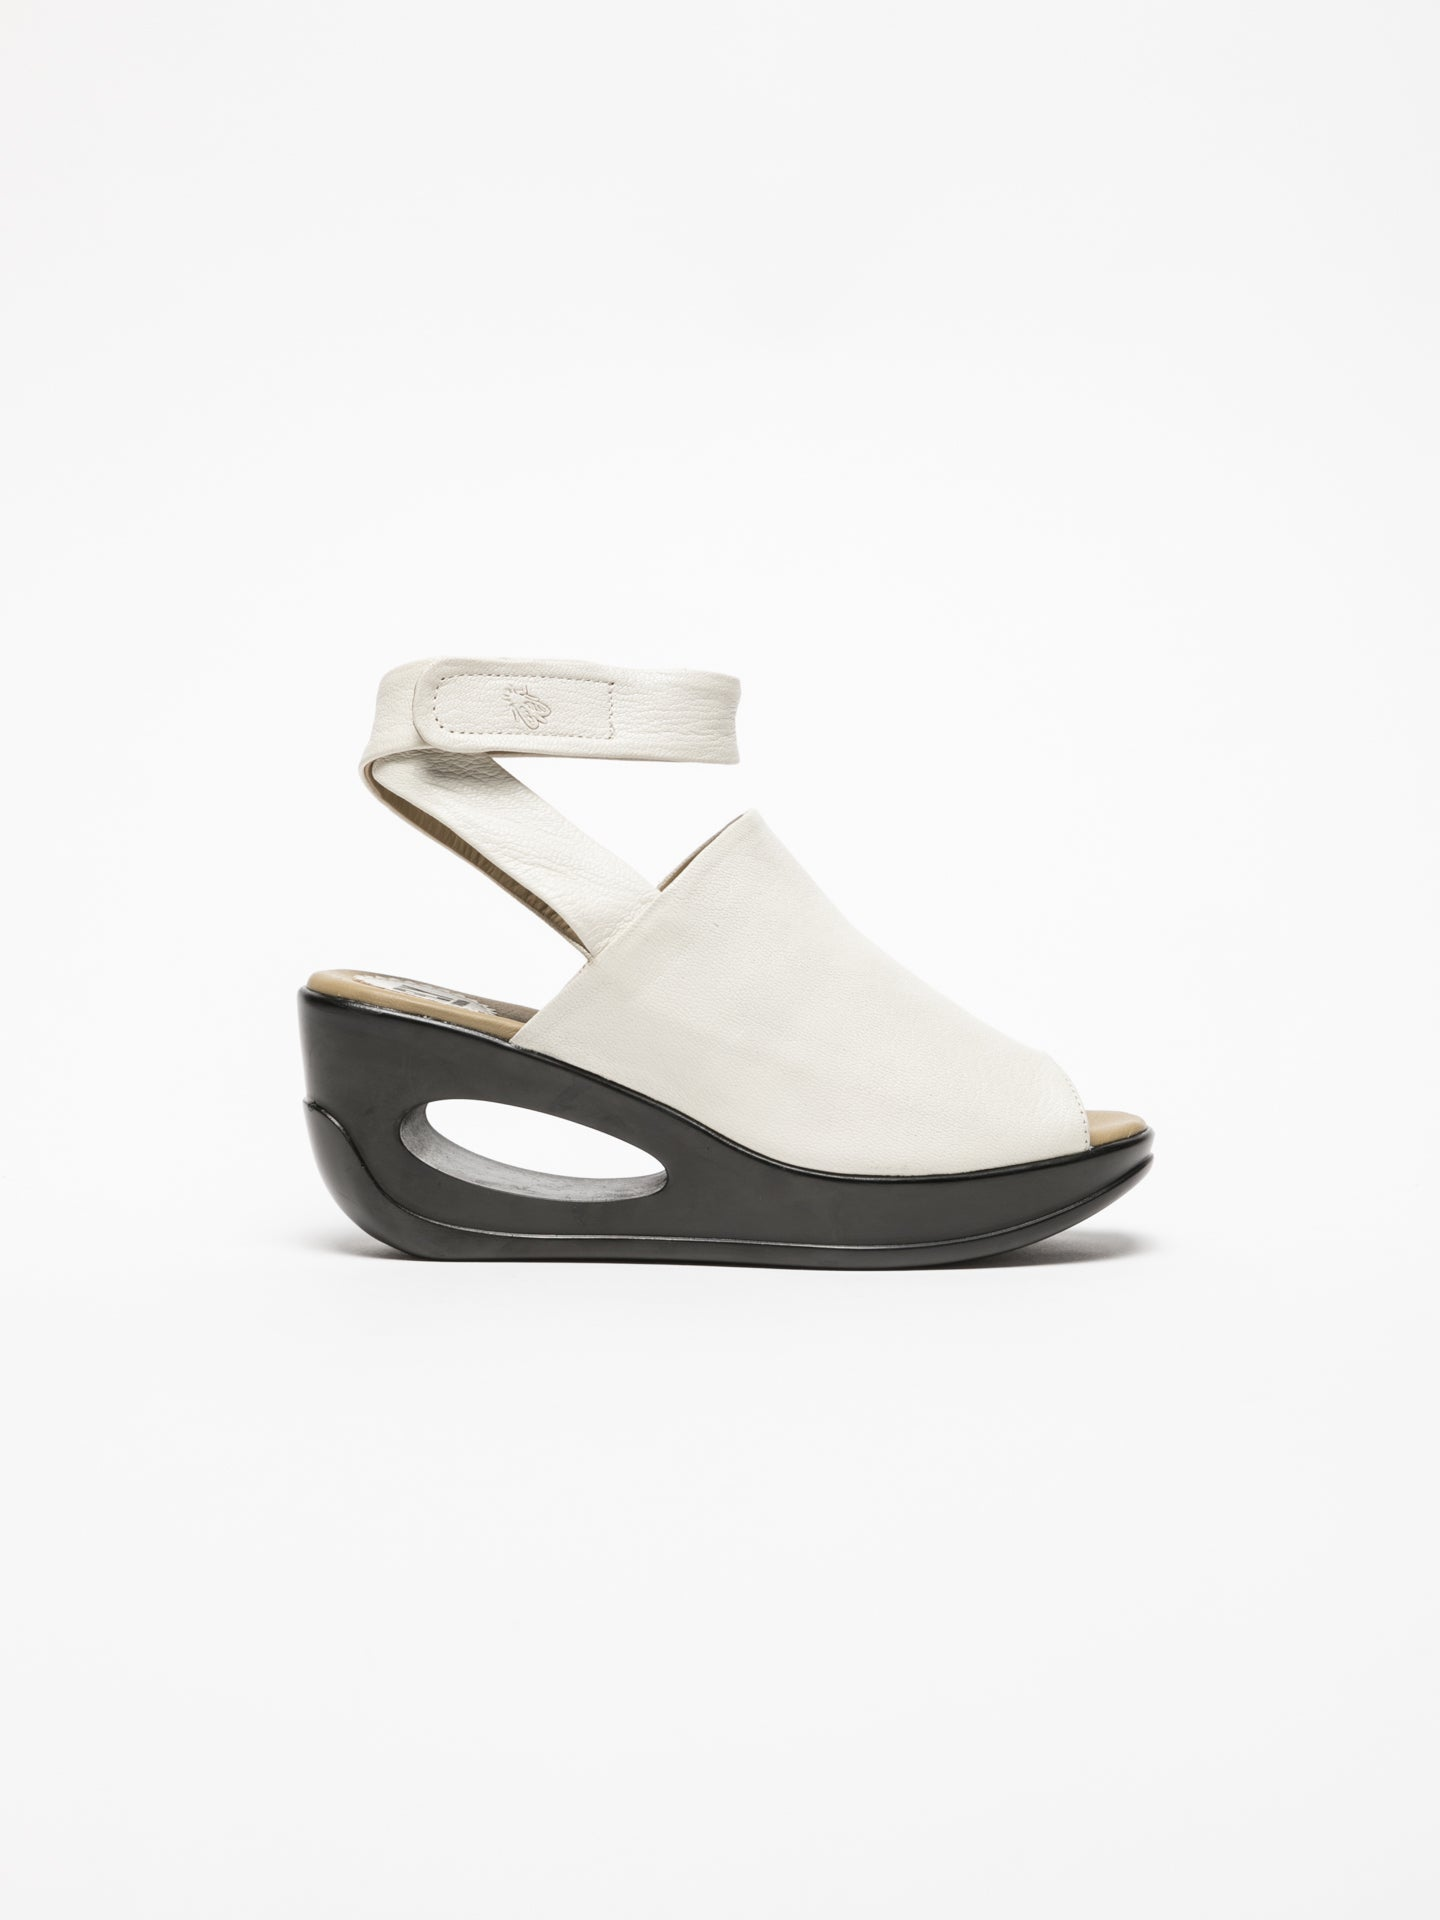 Fly London White Wedge Sandals